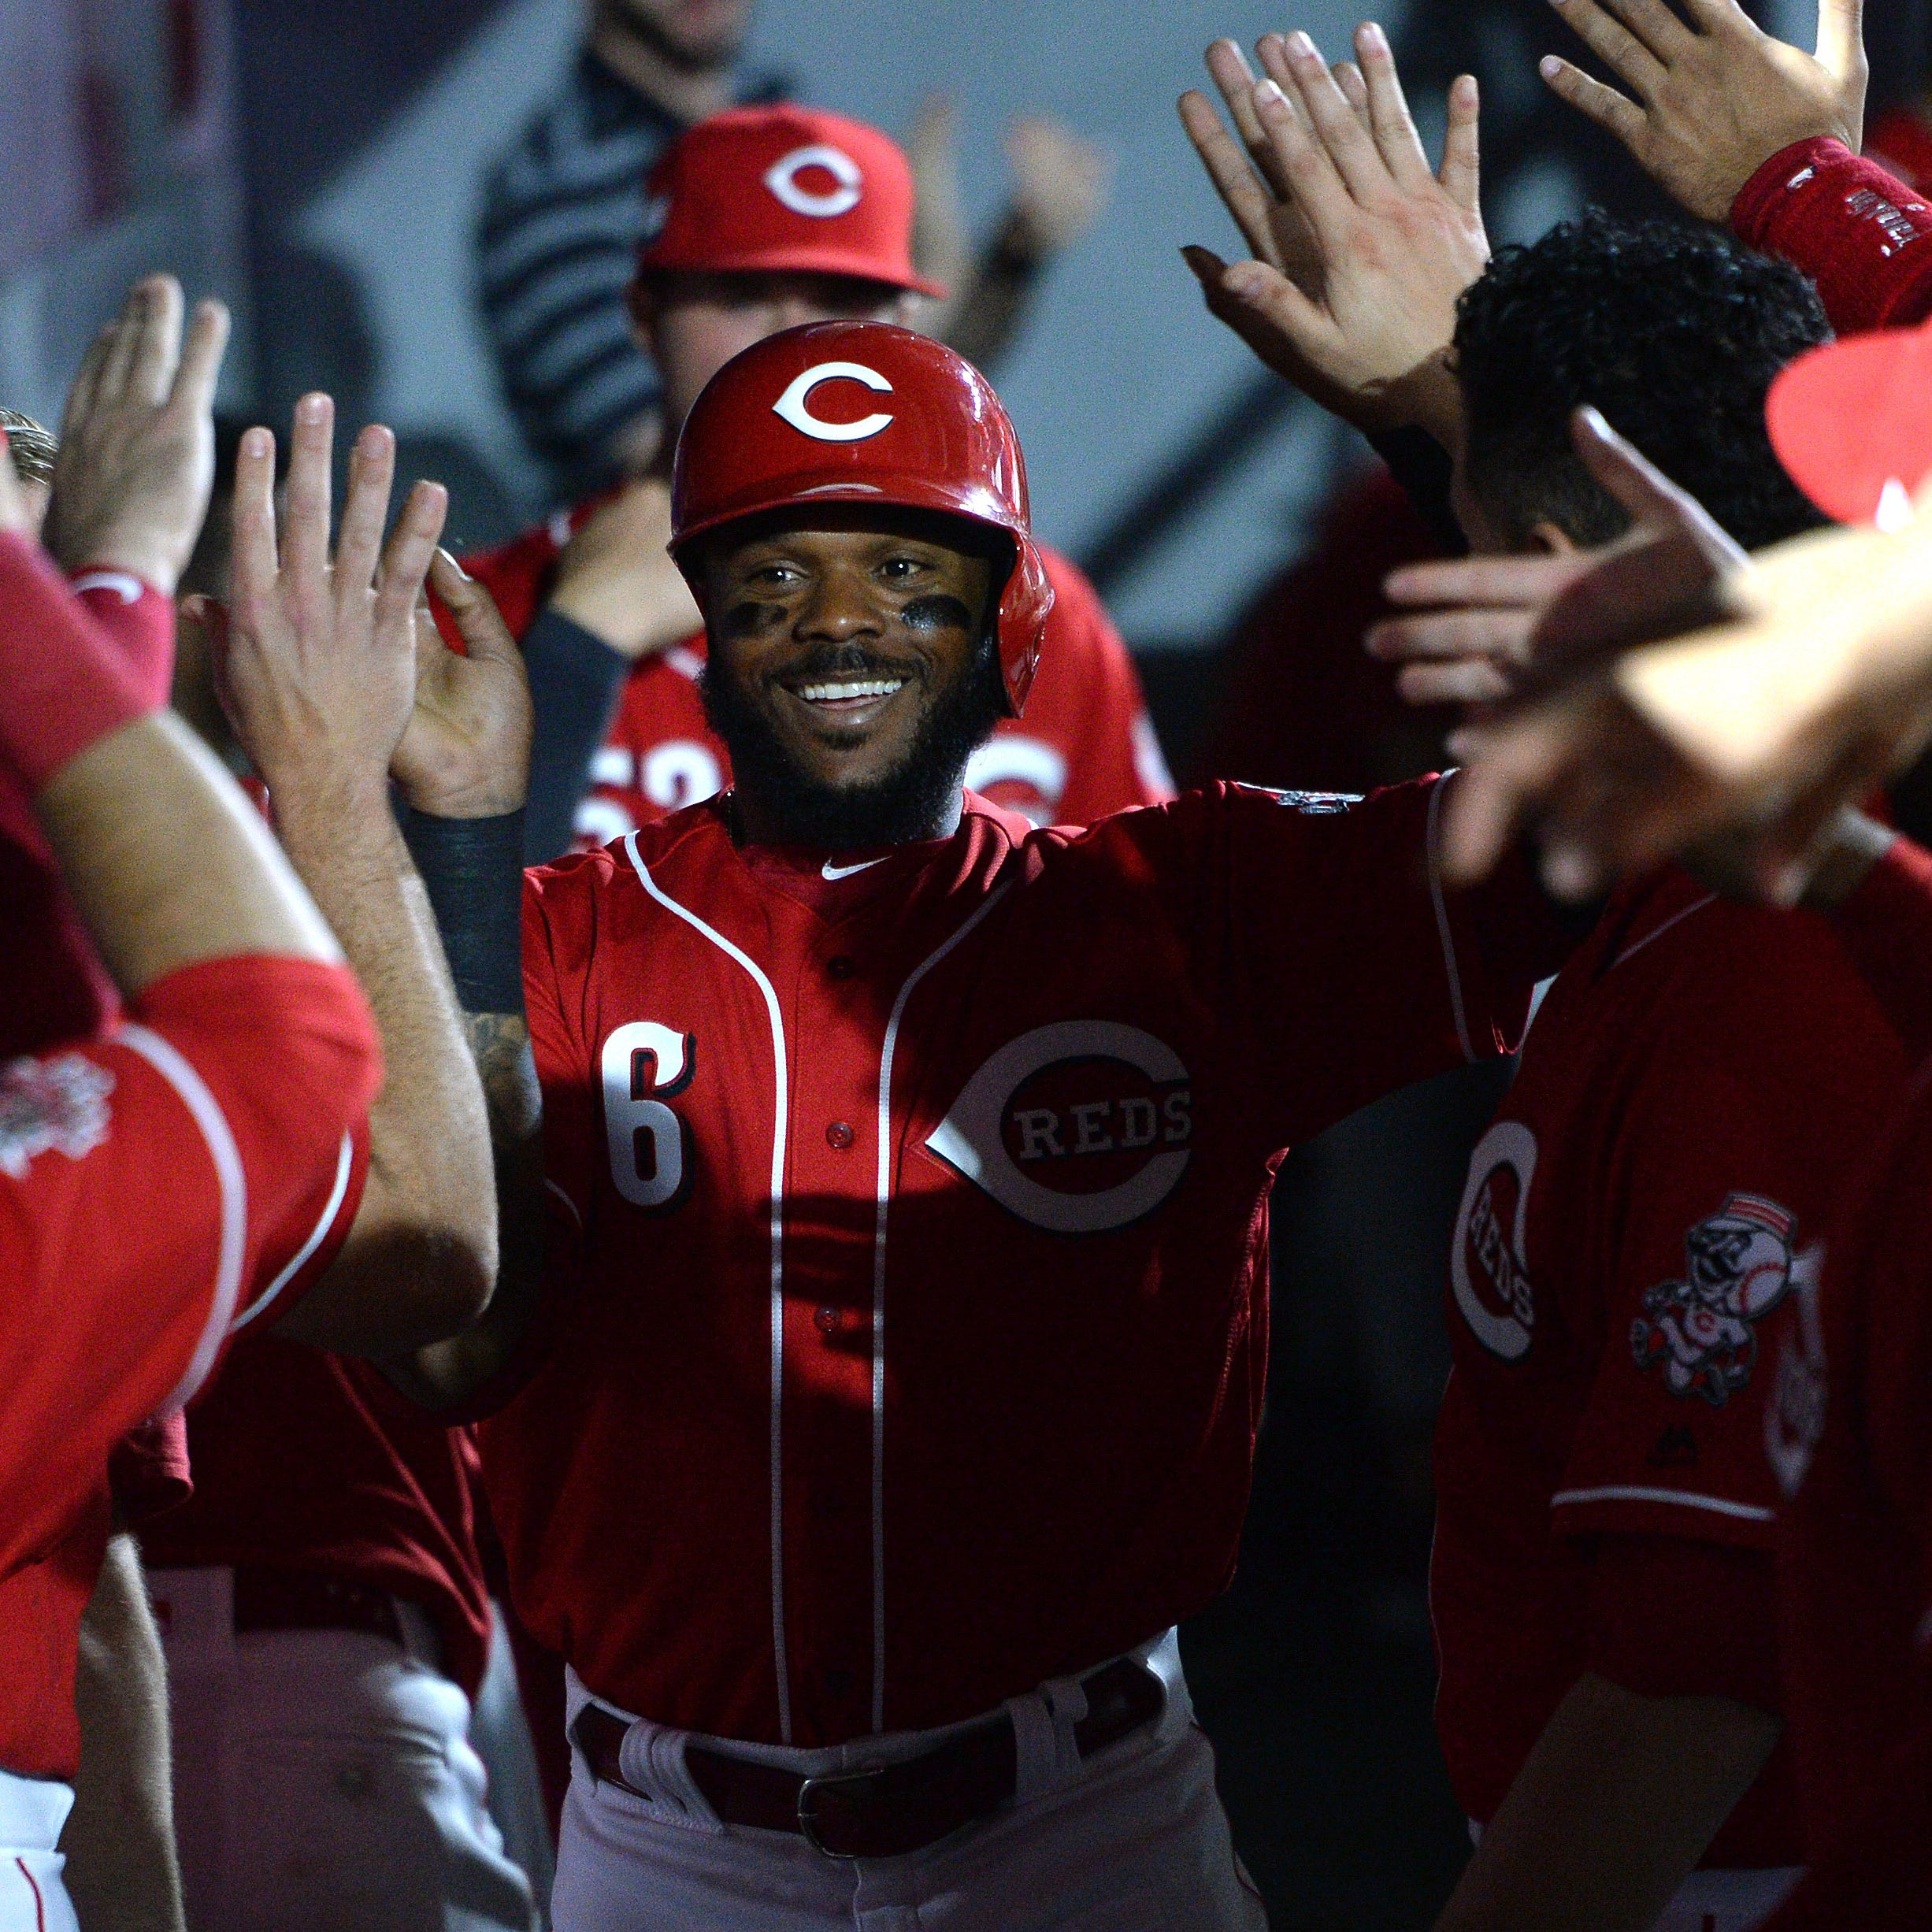 Reds manager David Bell says Phillip Ervin will get some starts in the absence of Matt Kemp